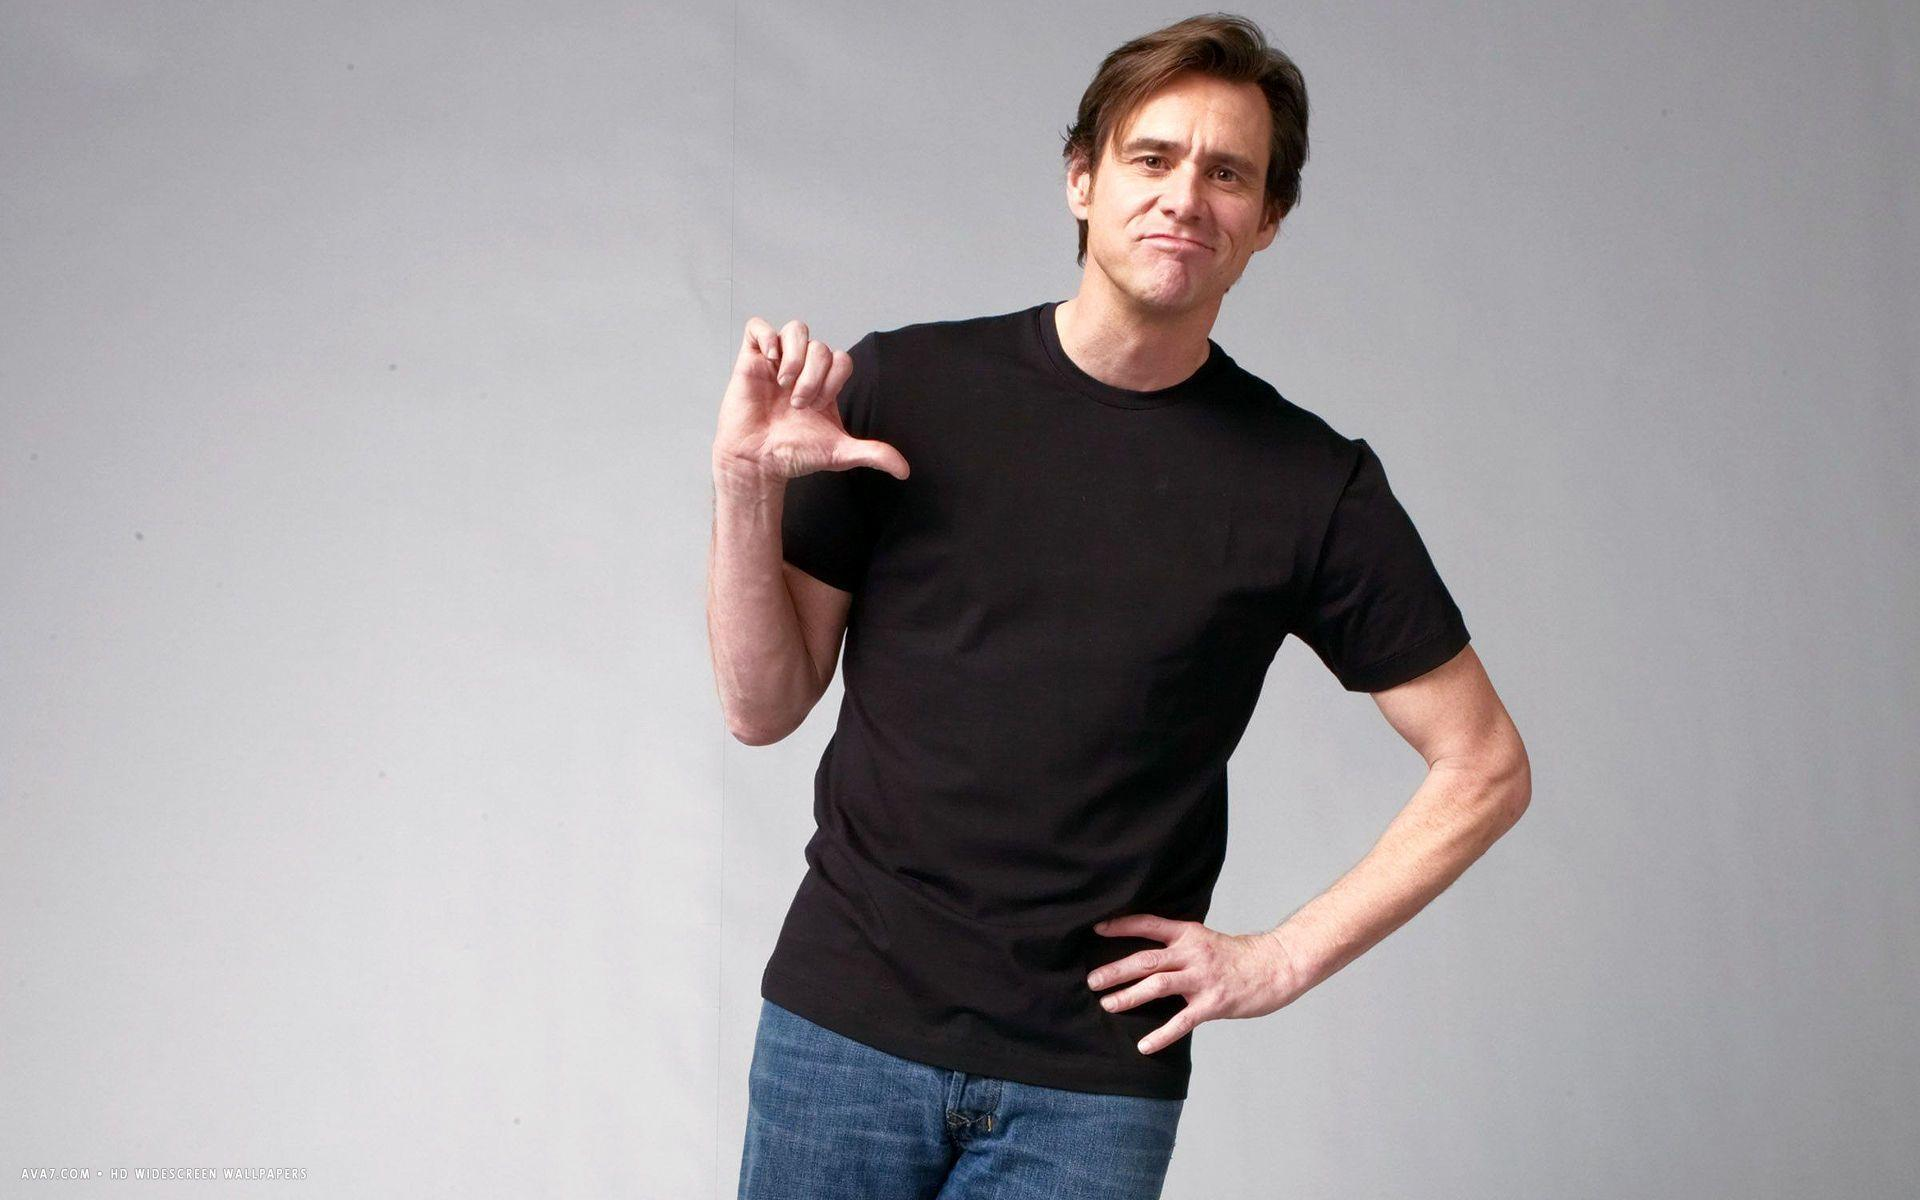 Jim Carrey Hd Wallpapers Free Download | New HD Wallpapers Download